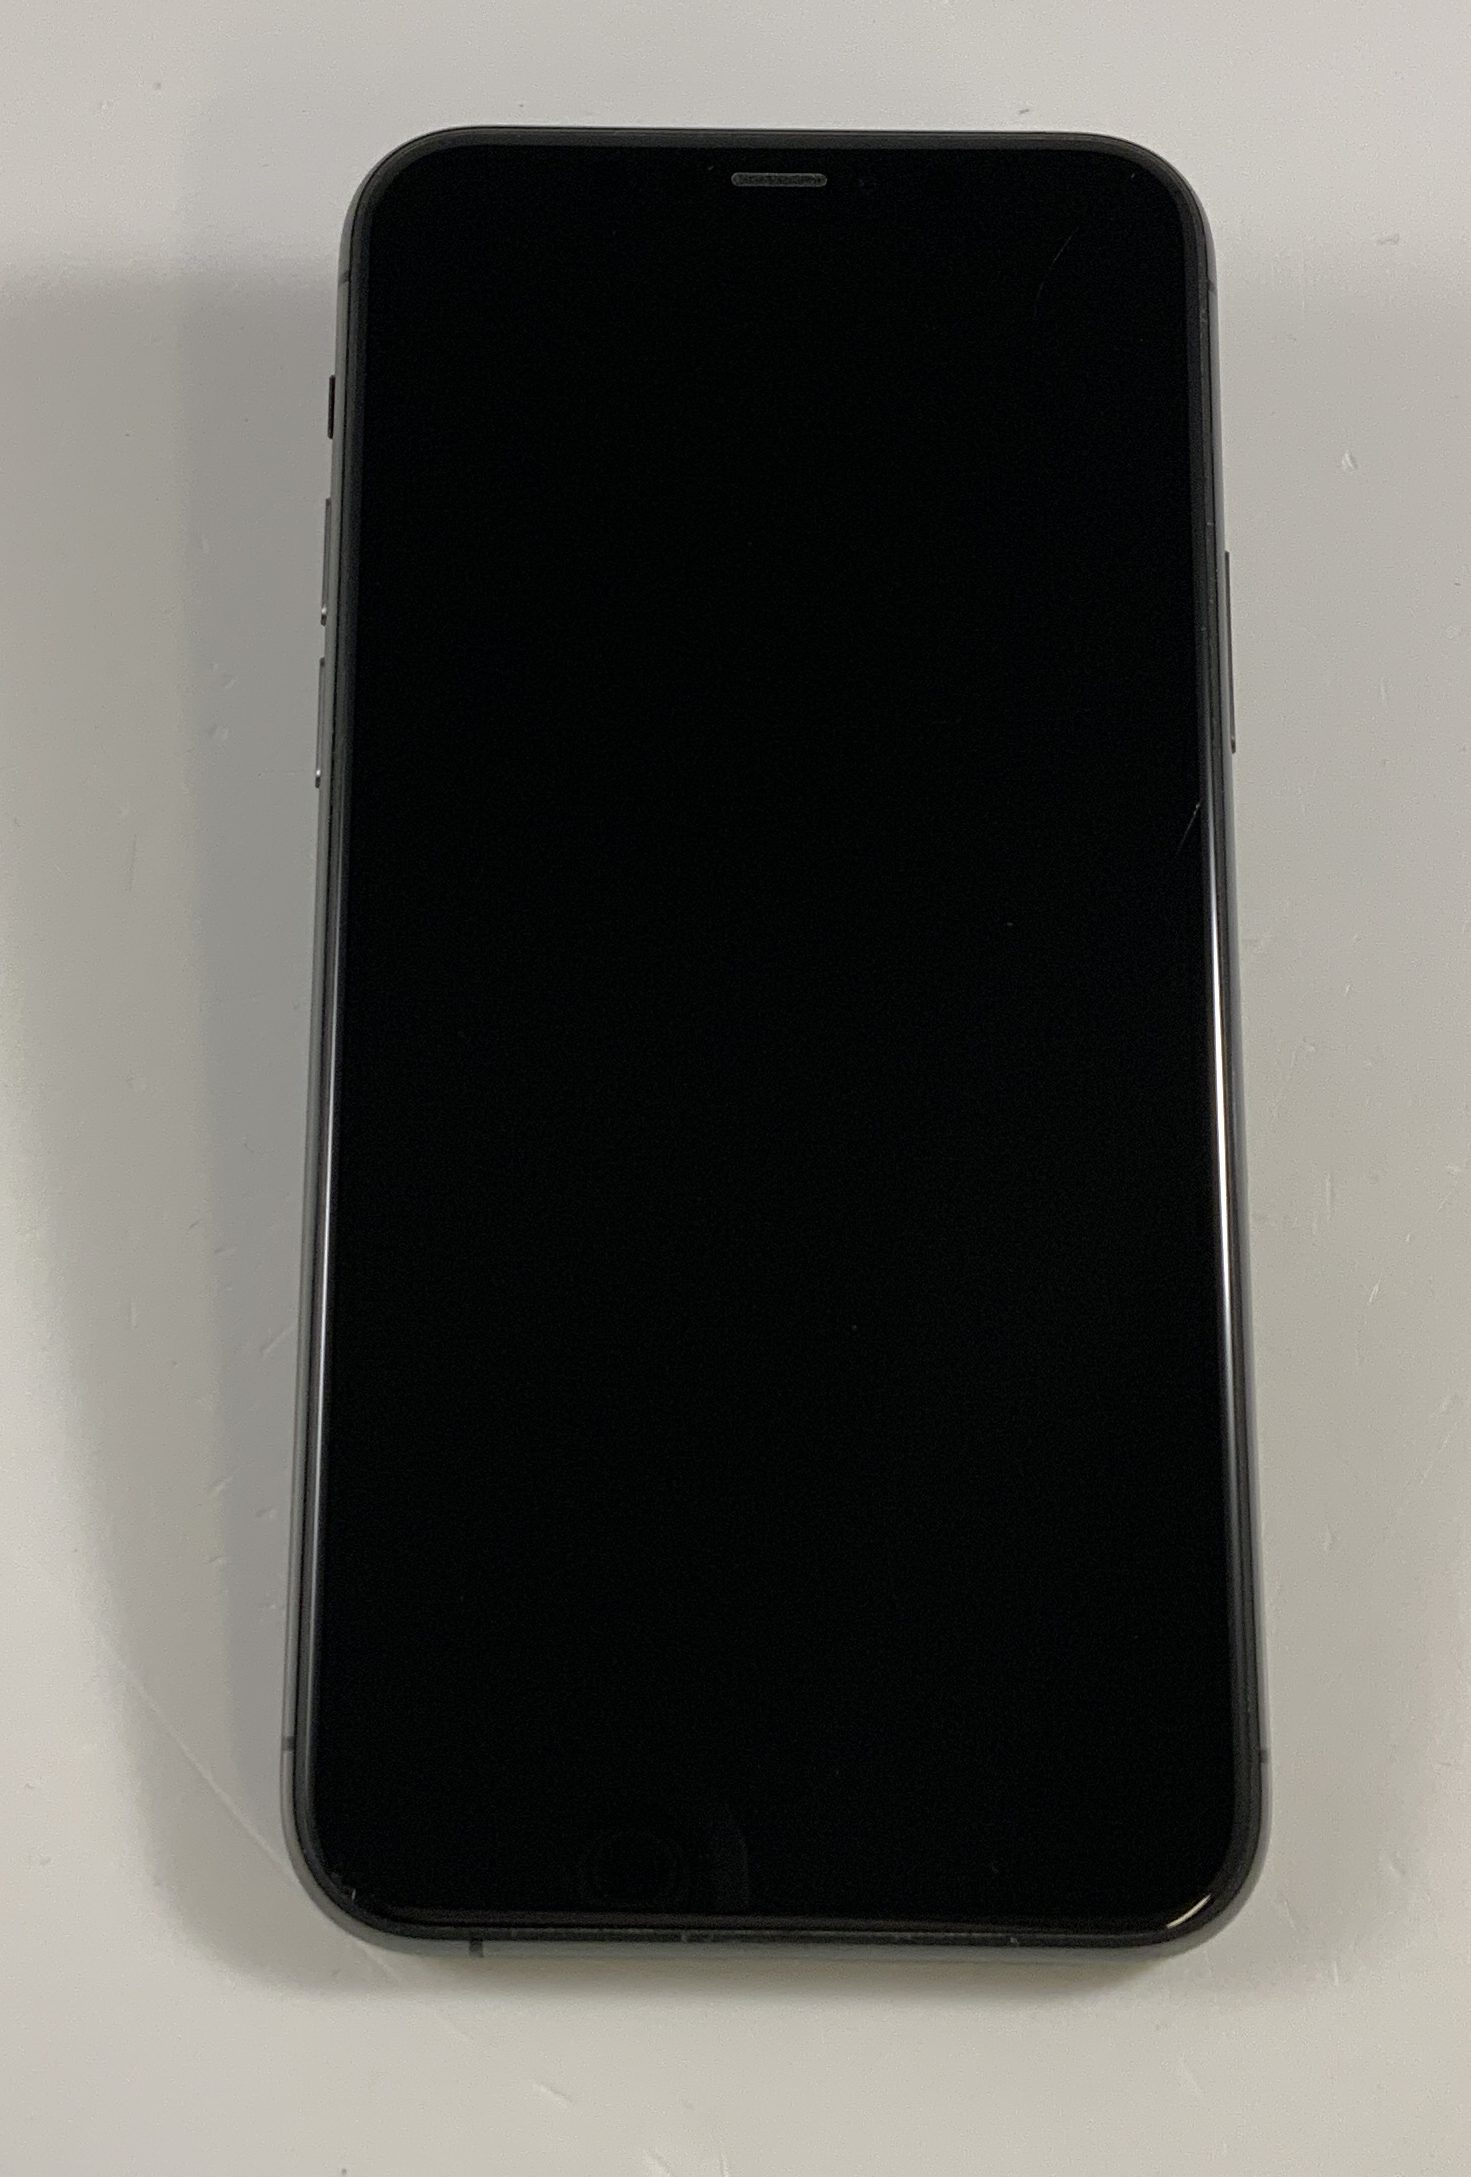 iPhone 11 Pro 256GB, 256GB, Space Gray, immagine 1